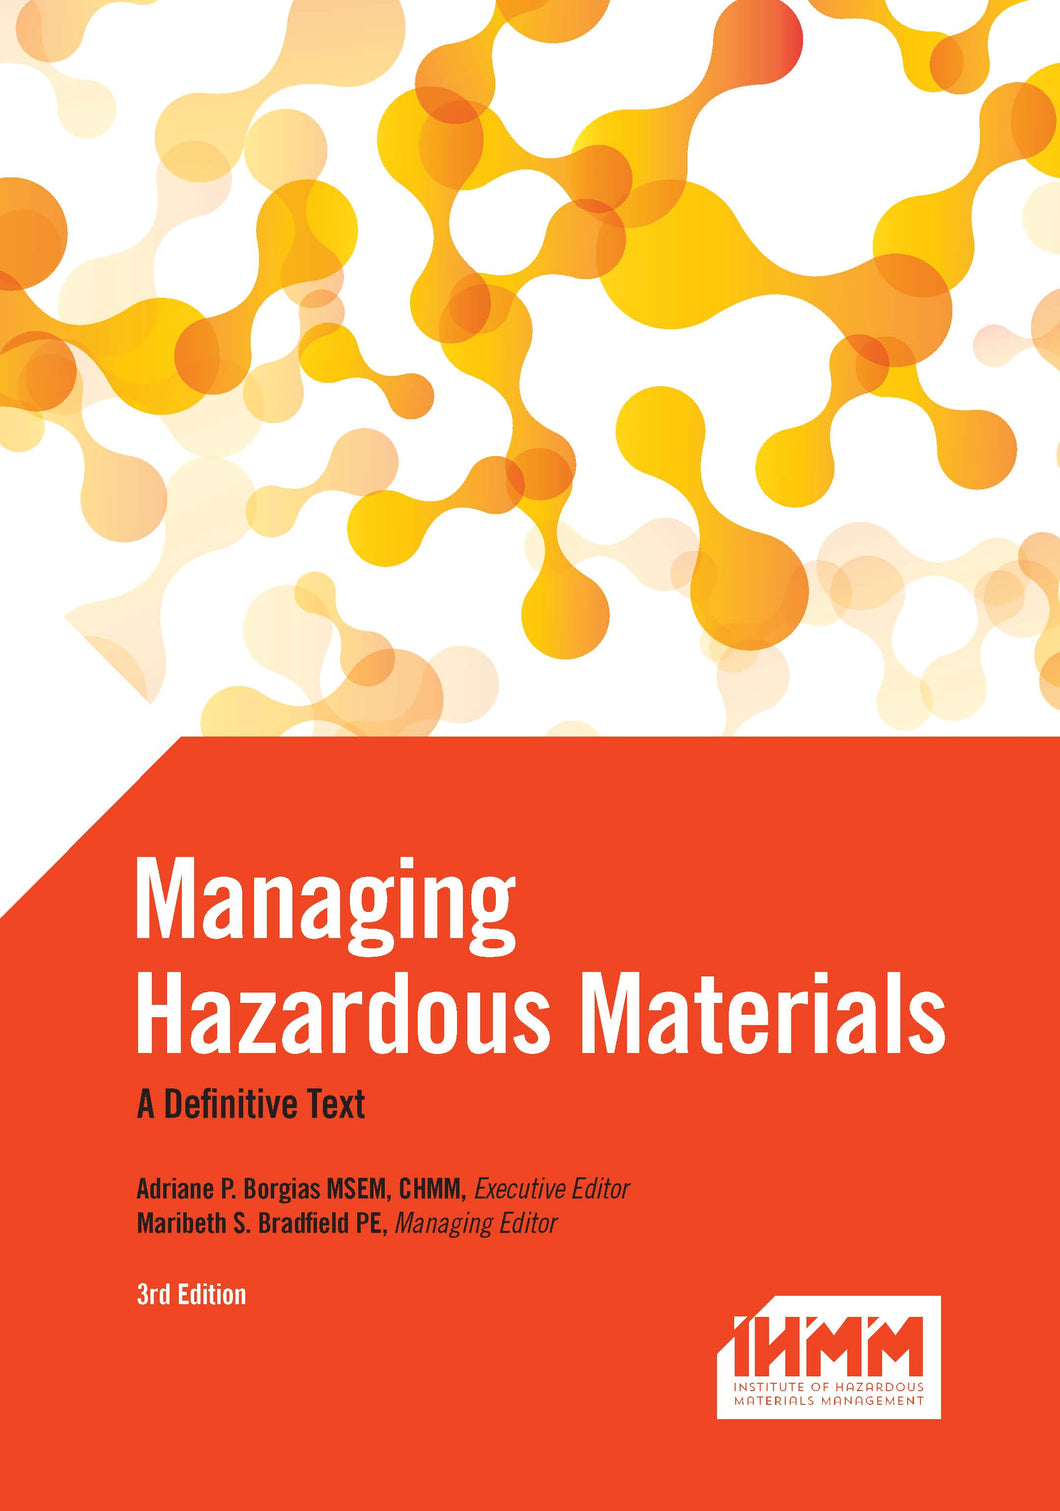 Managing Hazardous Materials: A Definitive Text 3rd Edition © 2015